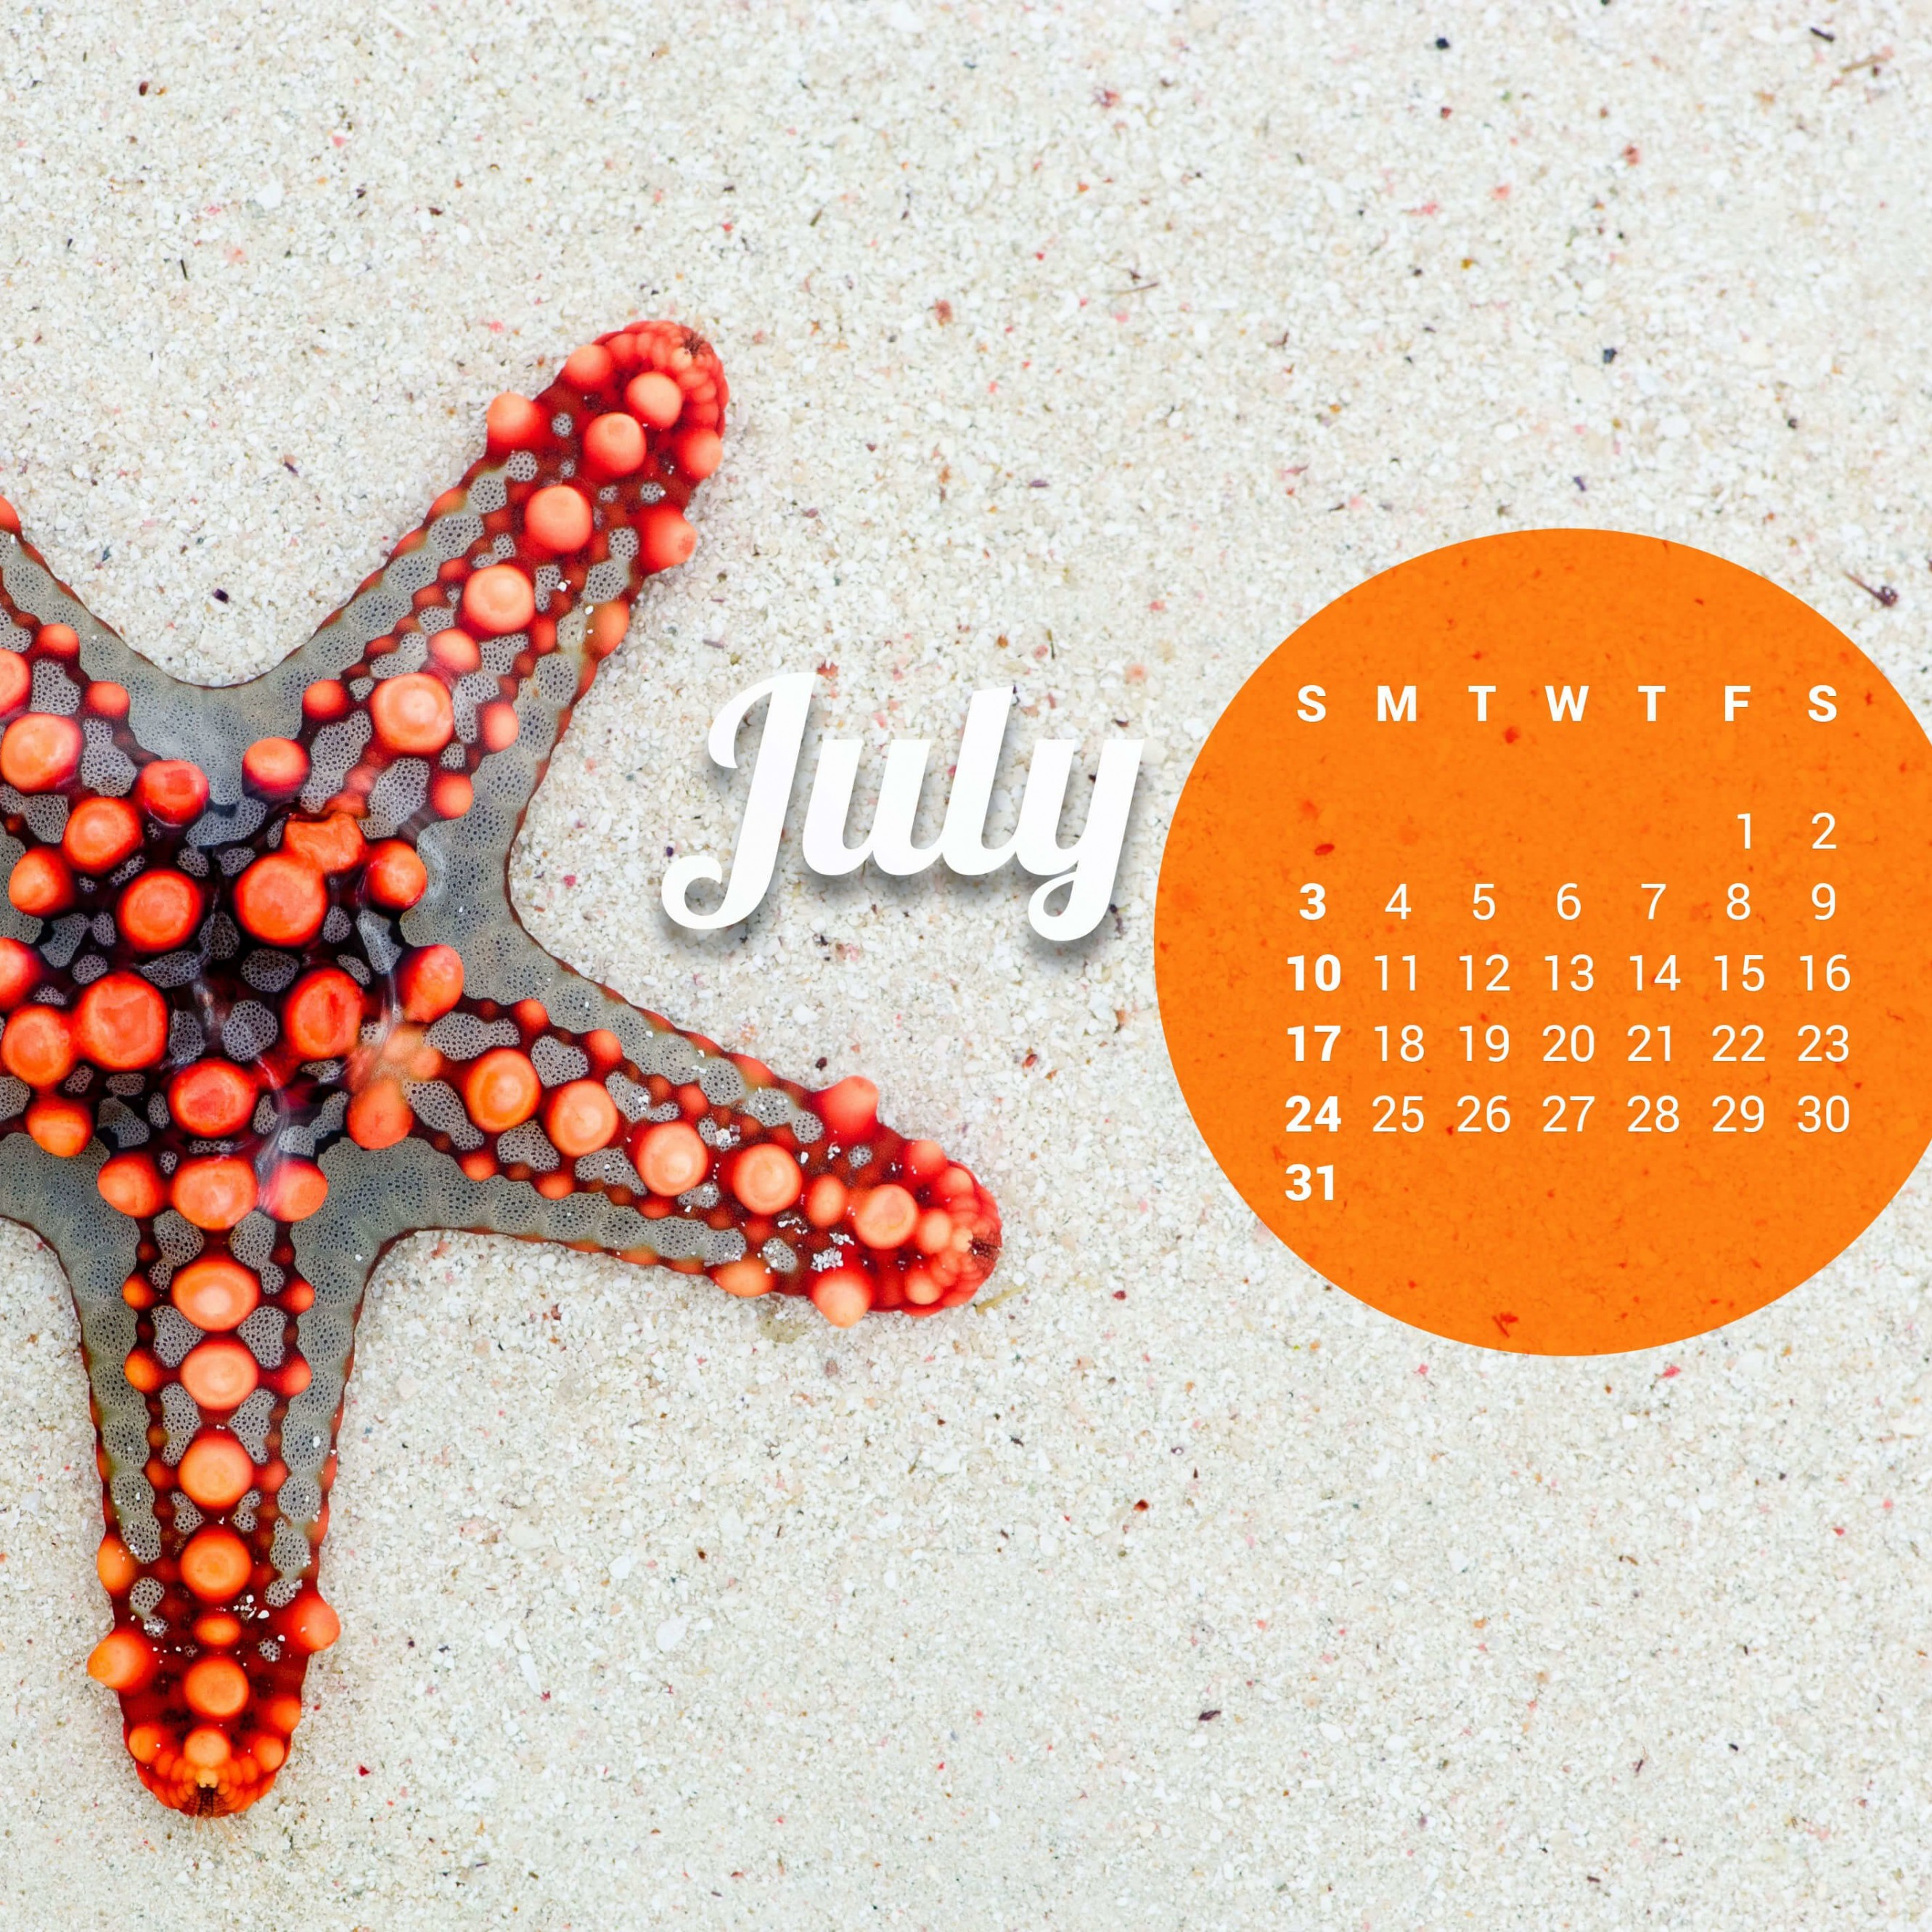 July 2016 Calendar Wallpaper for Apple iPhone 6 Plus